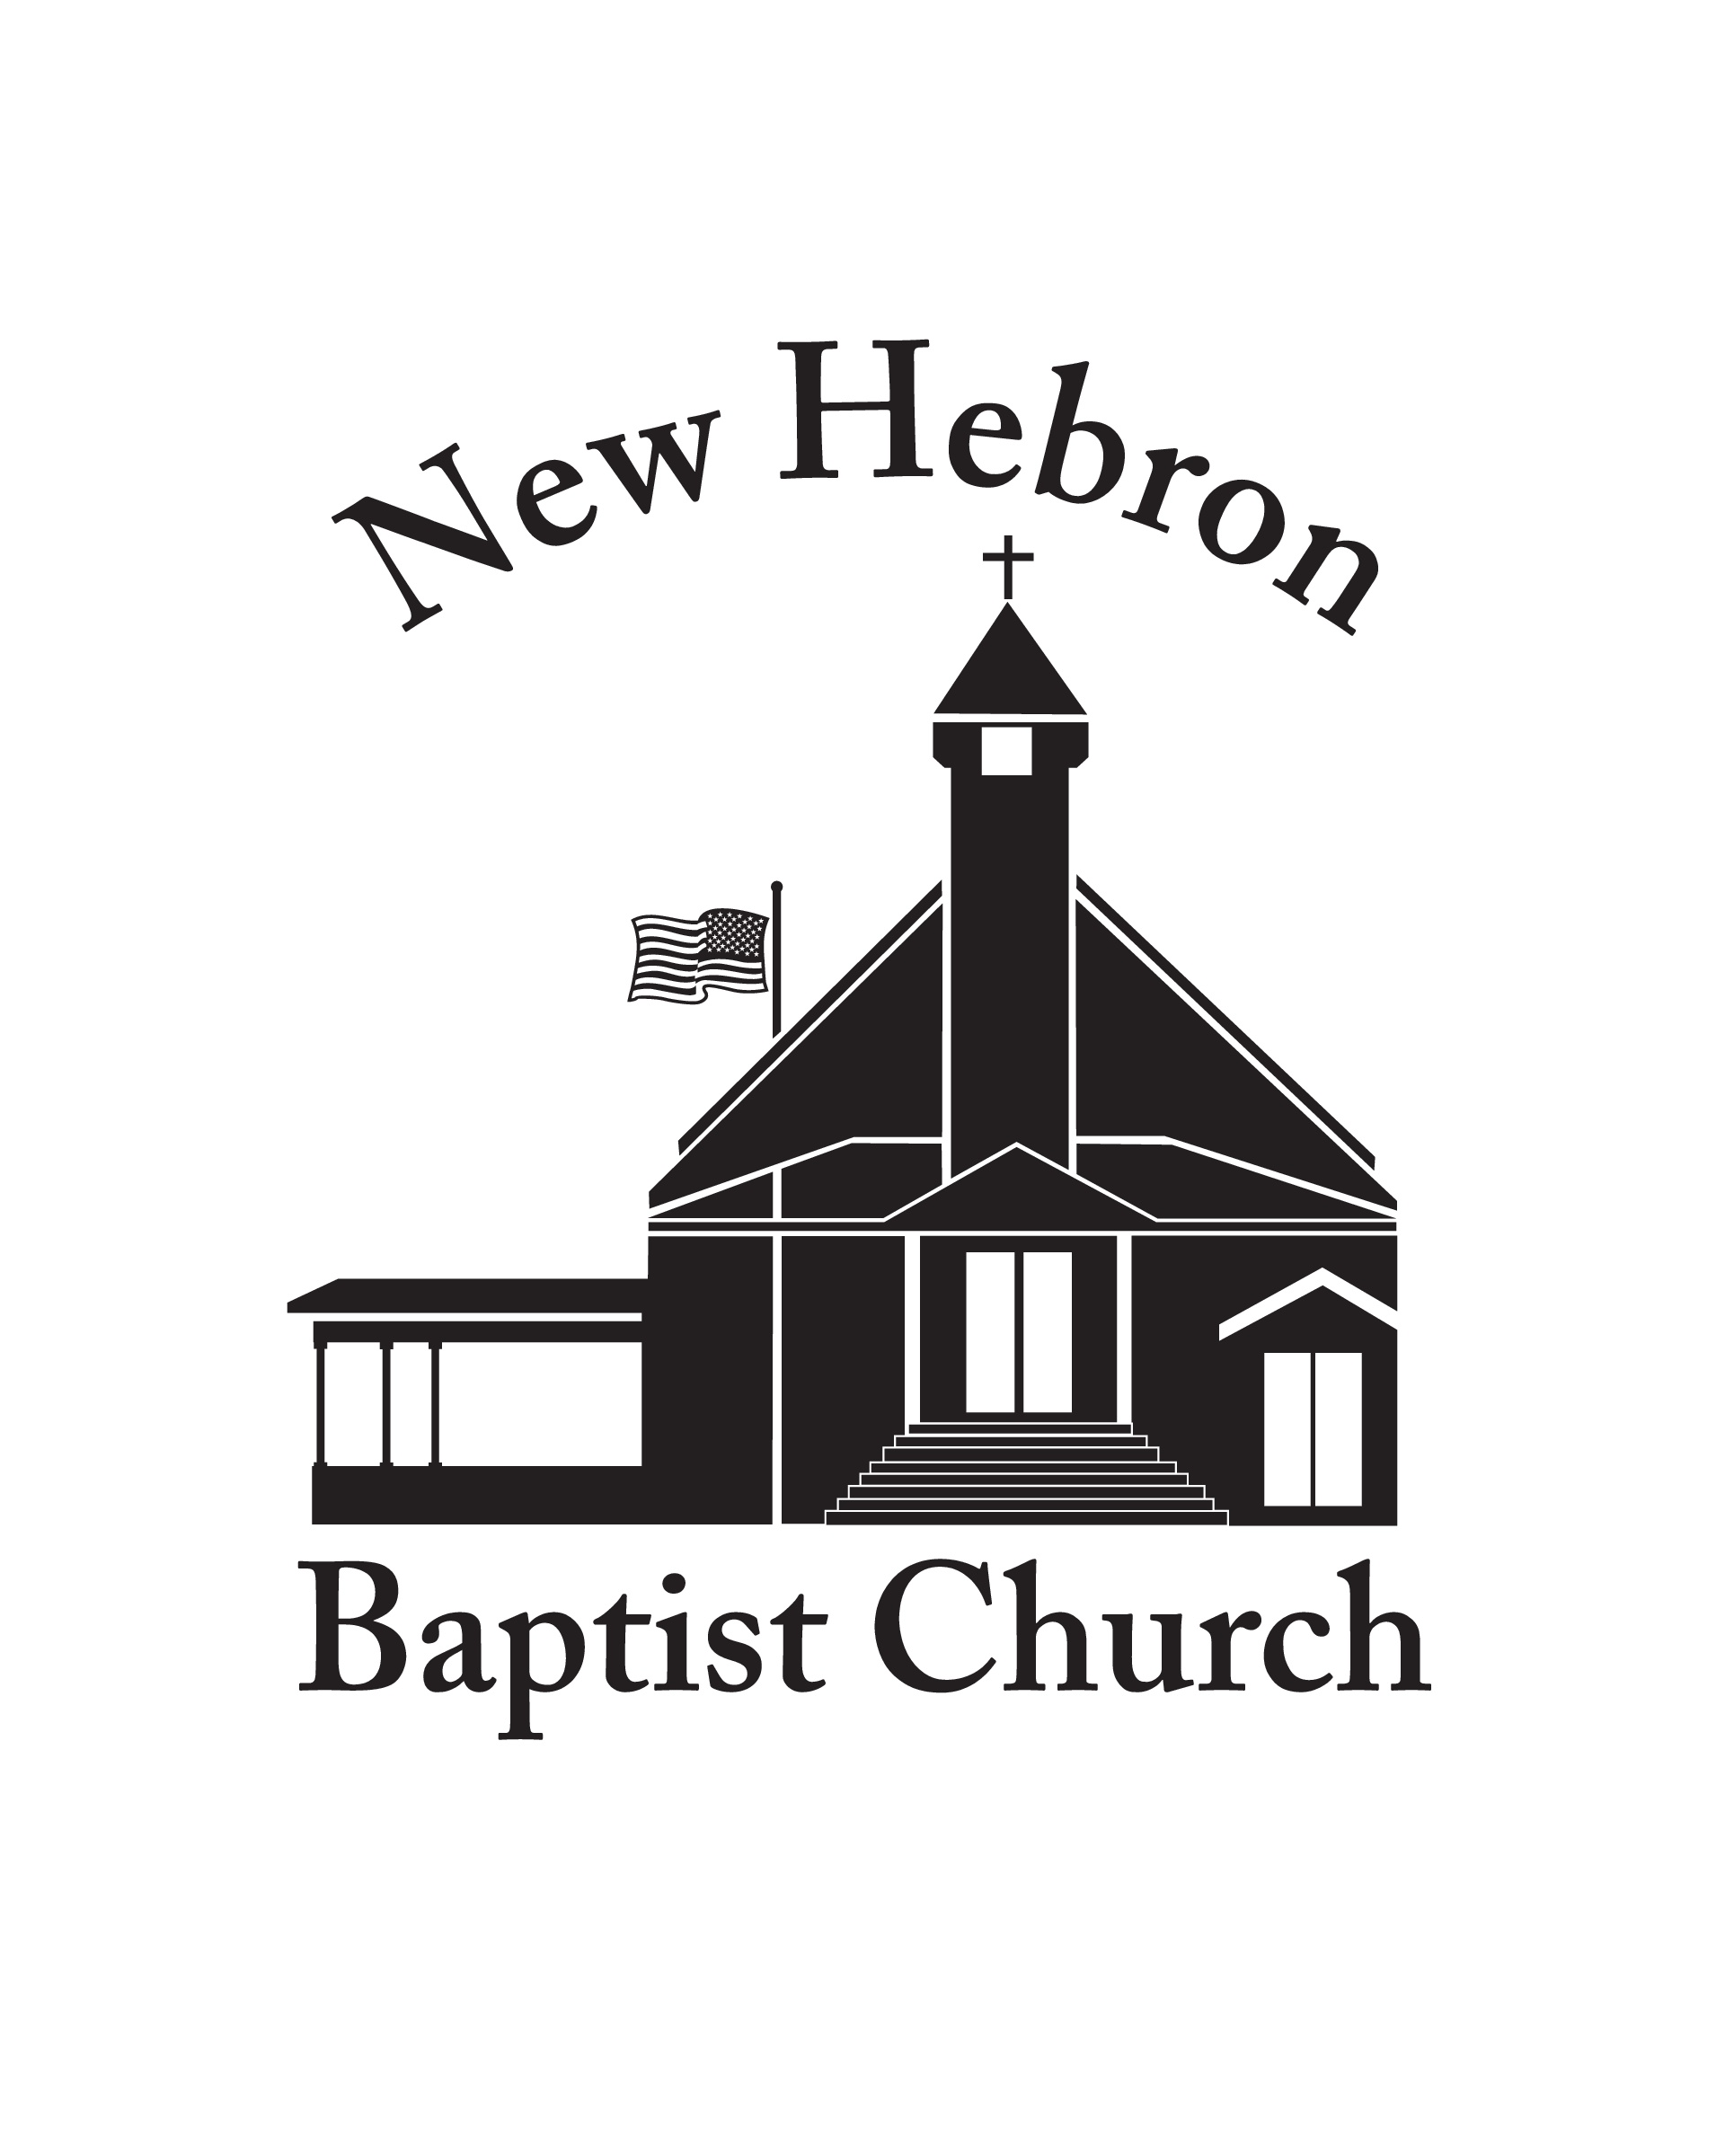 New Hebron Baptist Church}}